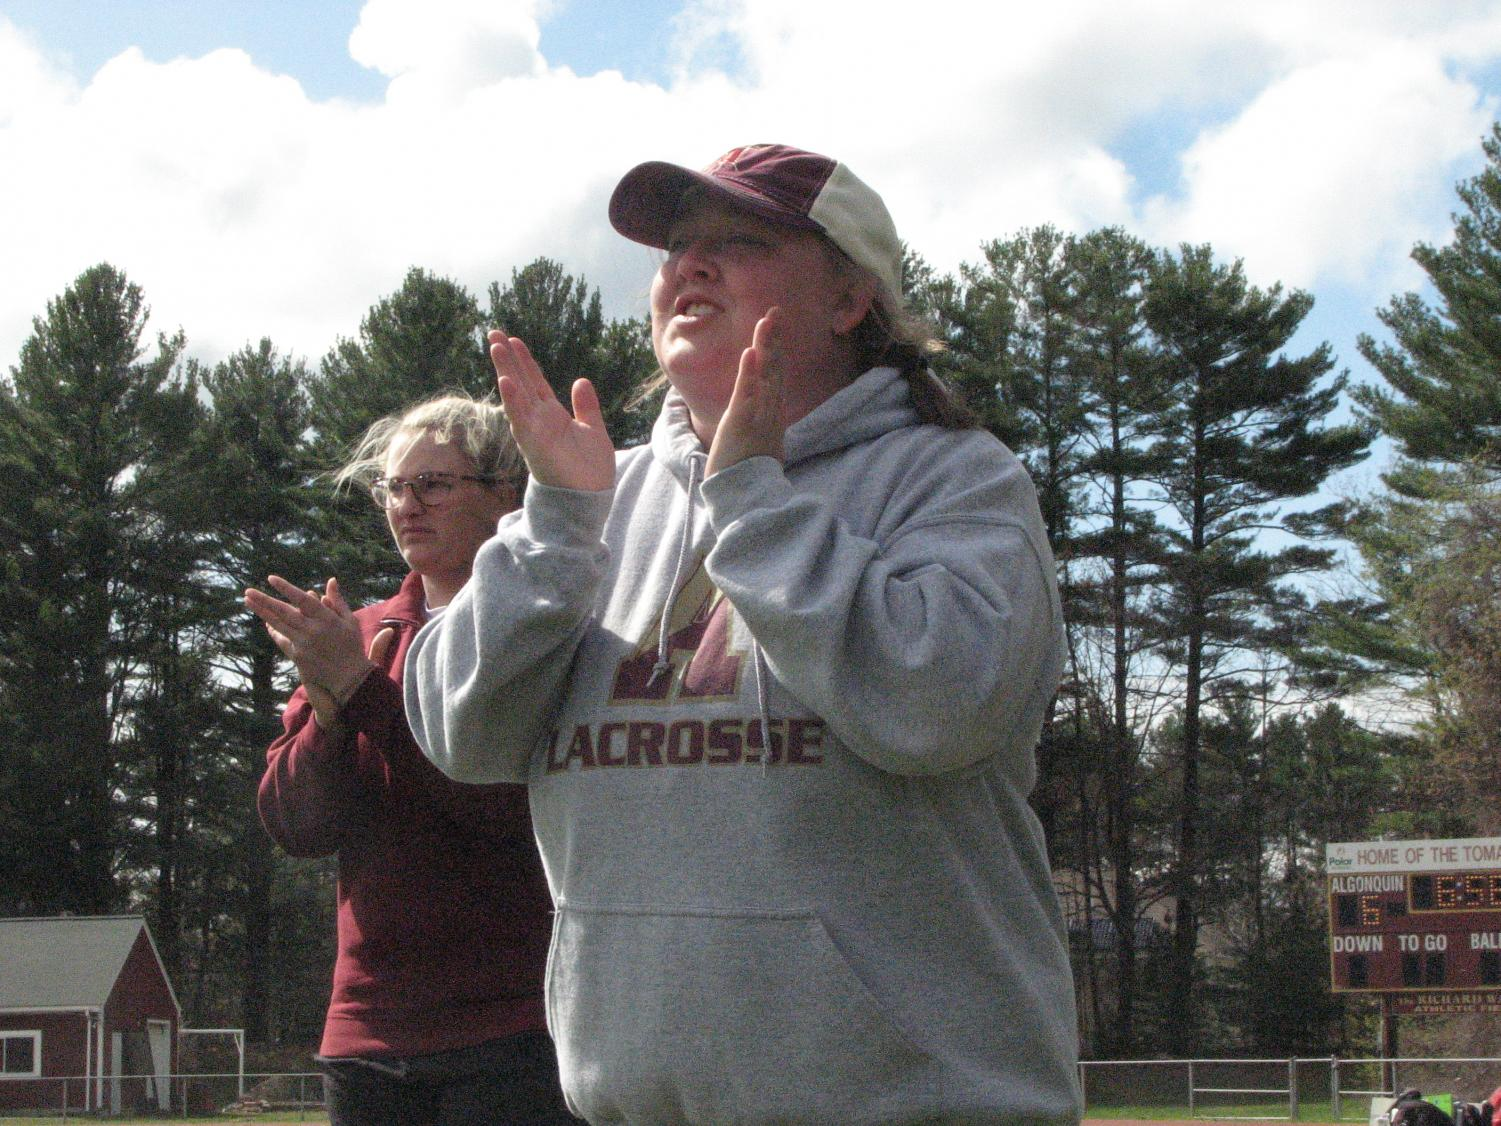 Class of 2013 graduate Emma Decker and new girls' lacrosse coach cheers on the team after they score a goal on Dover-Sherborn on April 27.